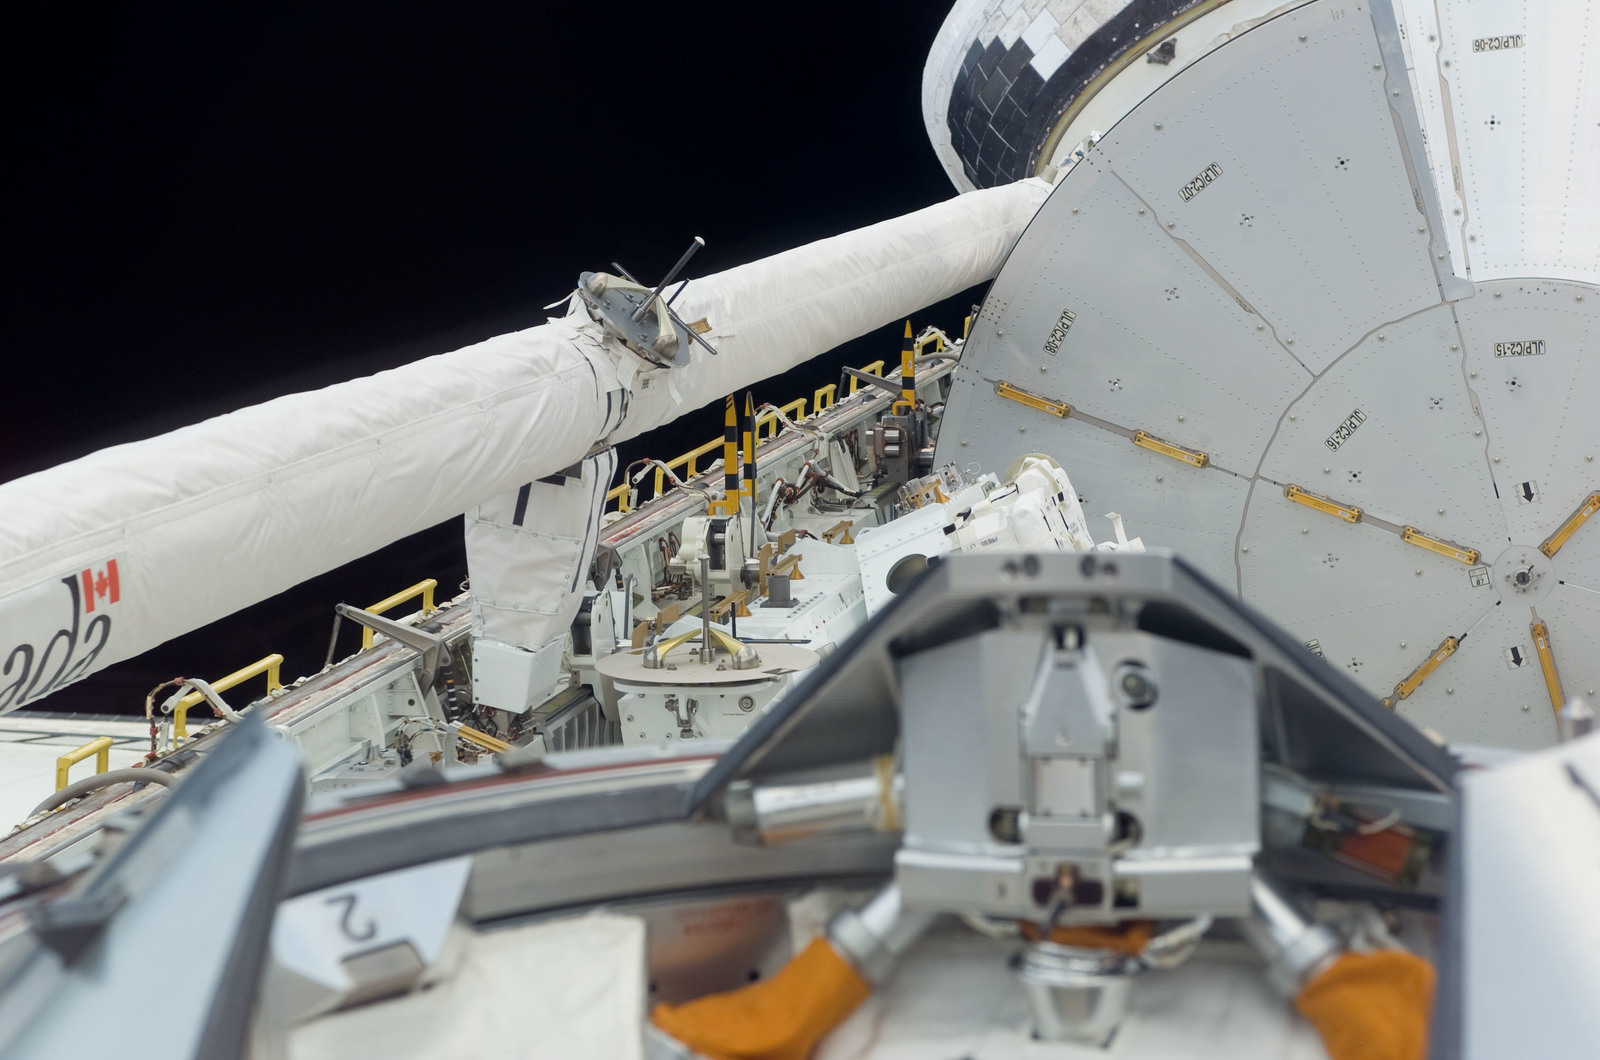 S123E005053 - STS-123 - Space Shuttle Endeavour,OV 105,Payload Bay during STS-123